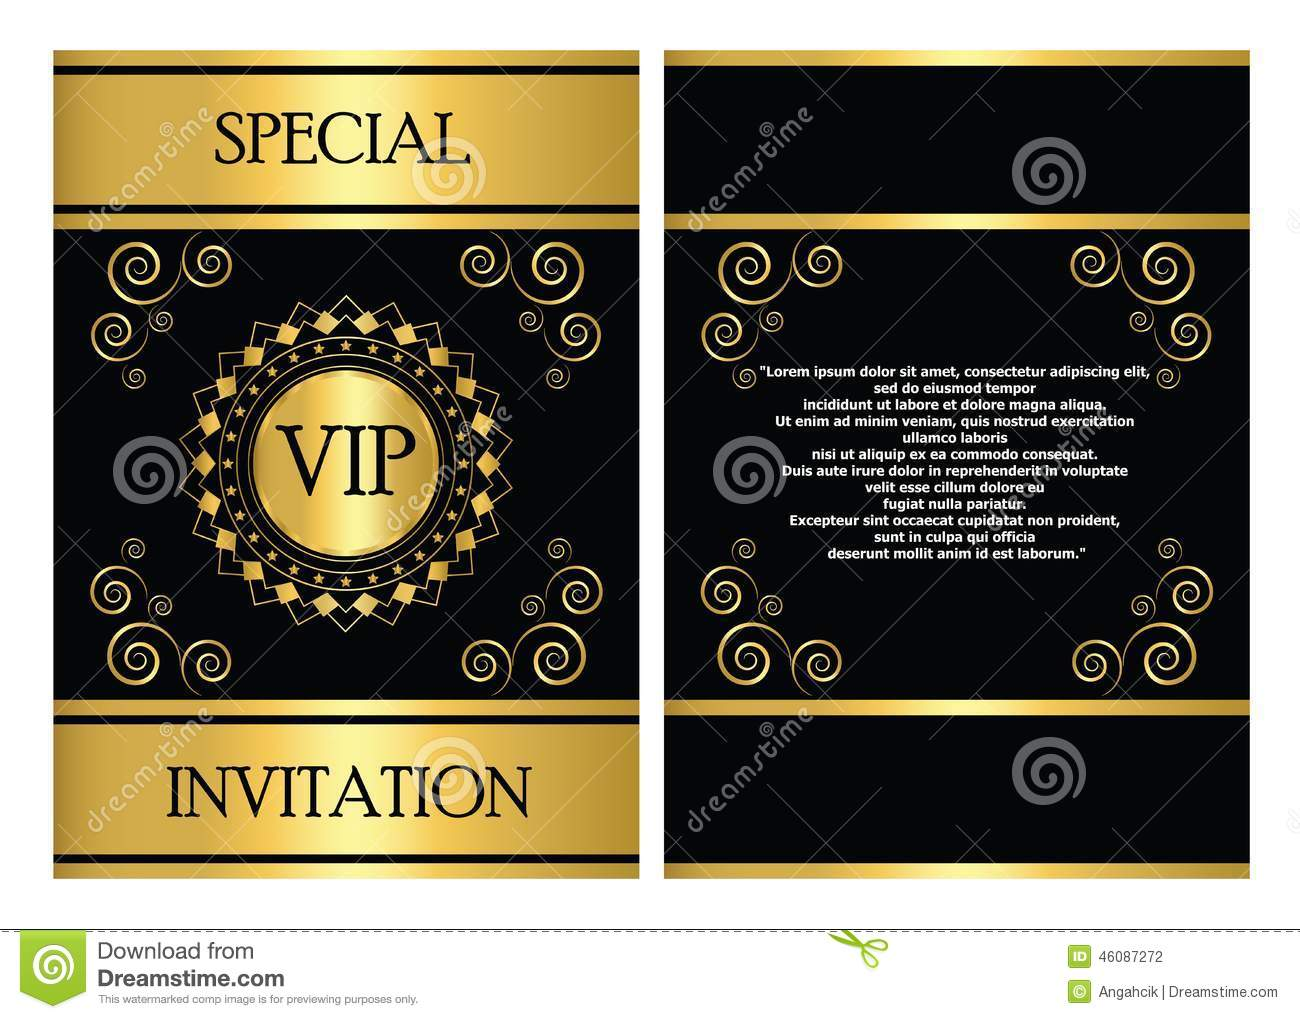 Sample Open House Invitations for nice invitations example